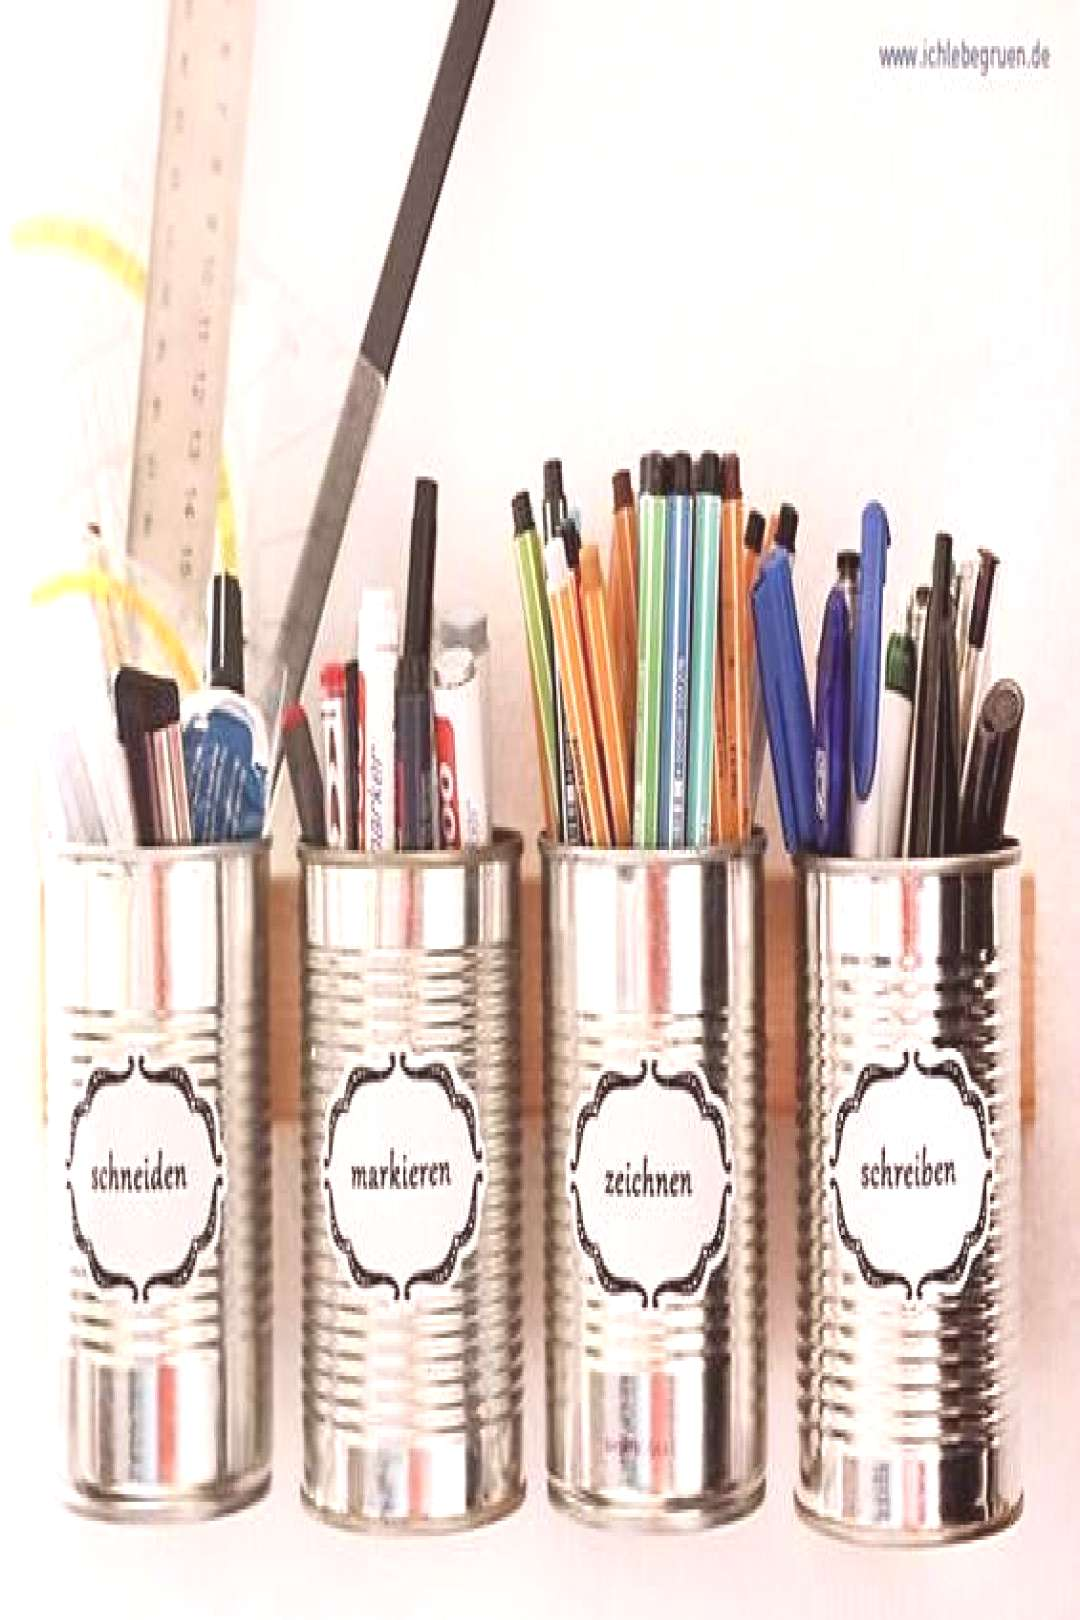 A nice system for hanging pens from old cans - DIY - do it yourself ... -  Make a nice system for h